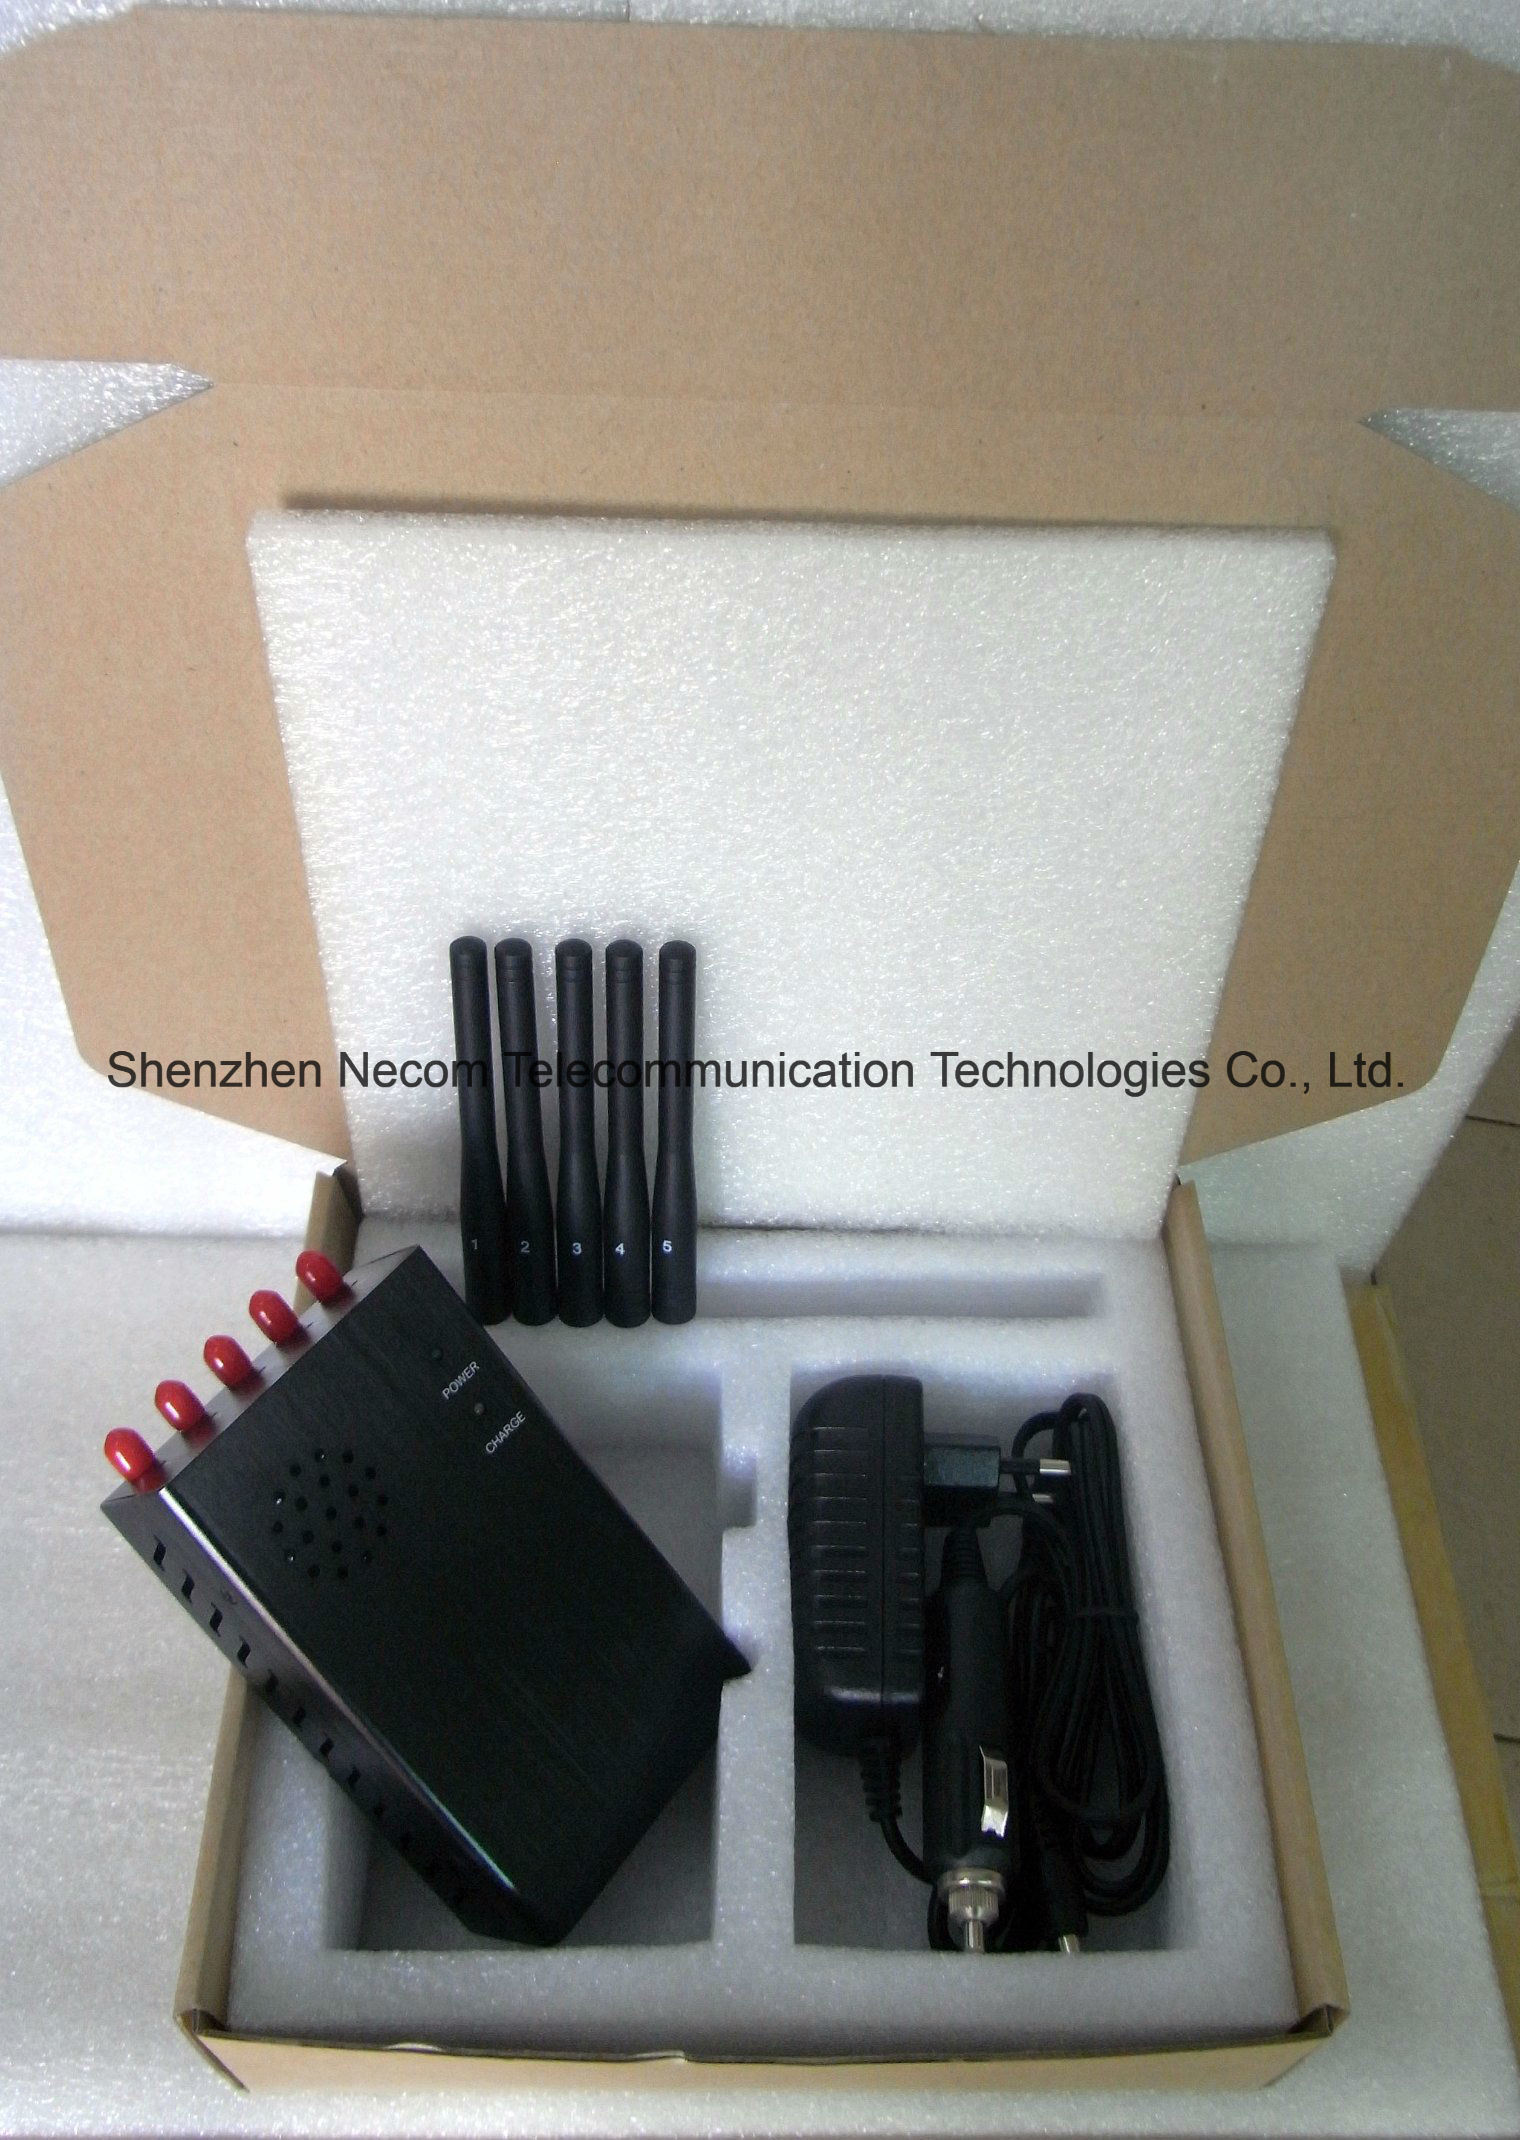 mobile network jammer fidget , China 2g+3G+Gpsl1+Lojack 5 Antennas Signal Blockers - China 2g+3G+Gpsl1+Lojack 5 Antennas Signal Blockers, 5 Band Signal Jammers